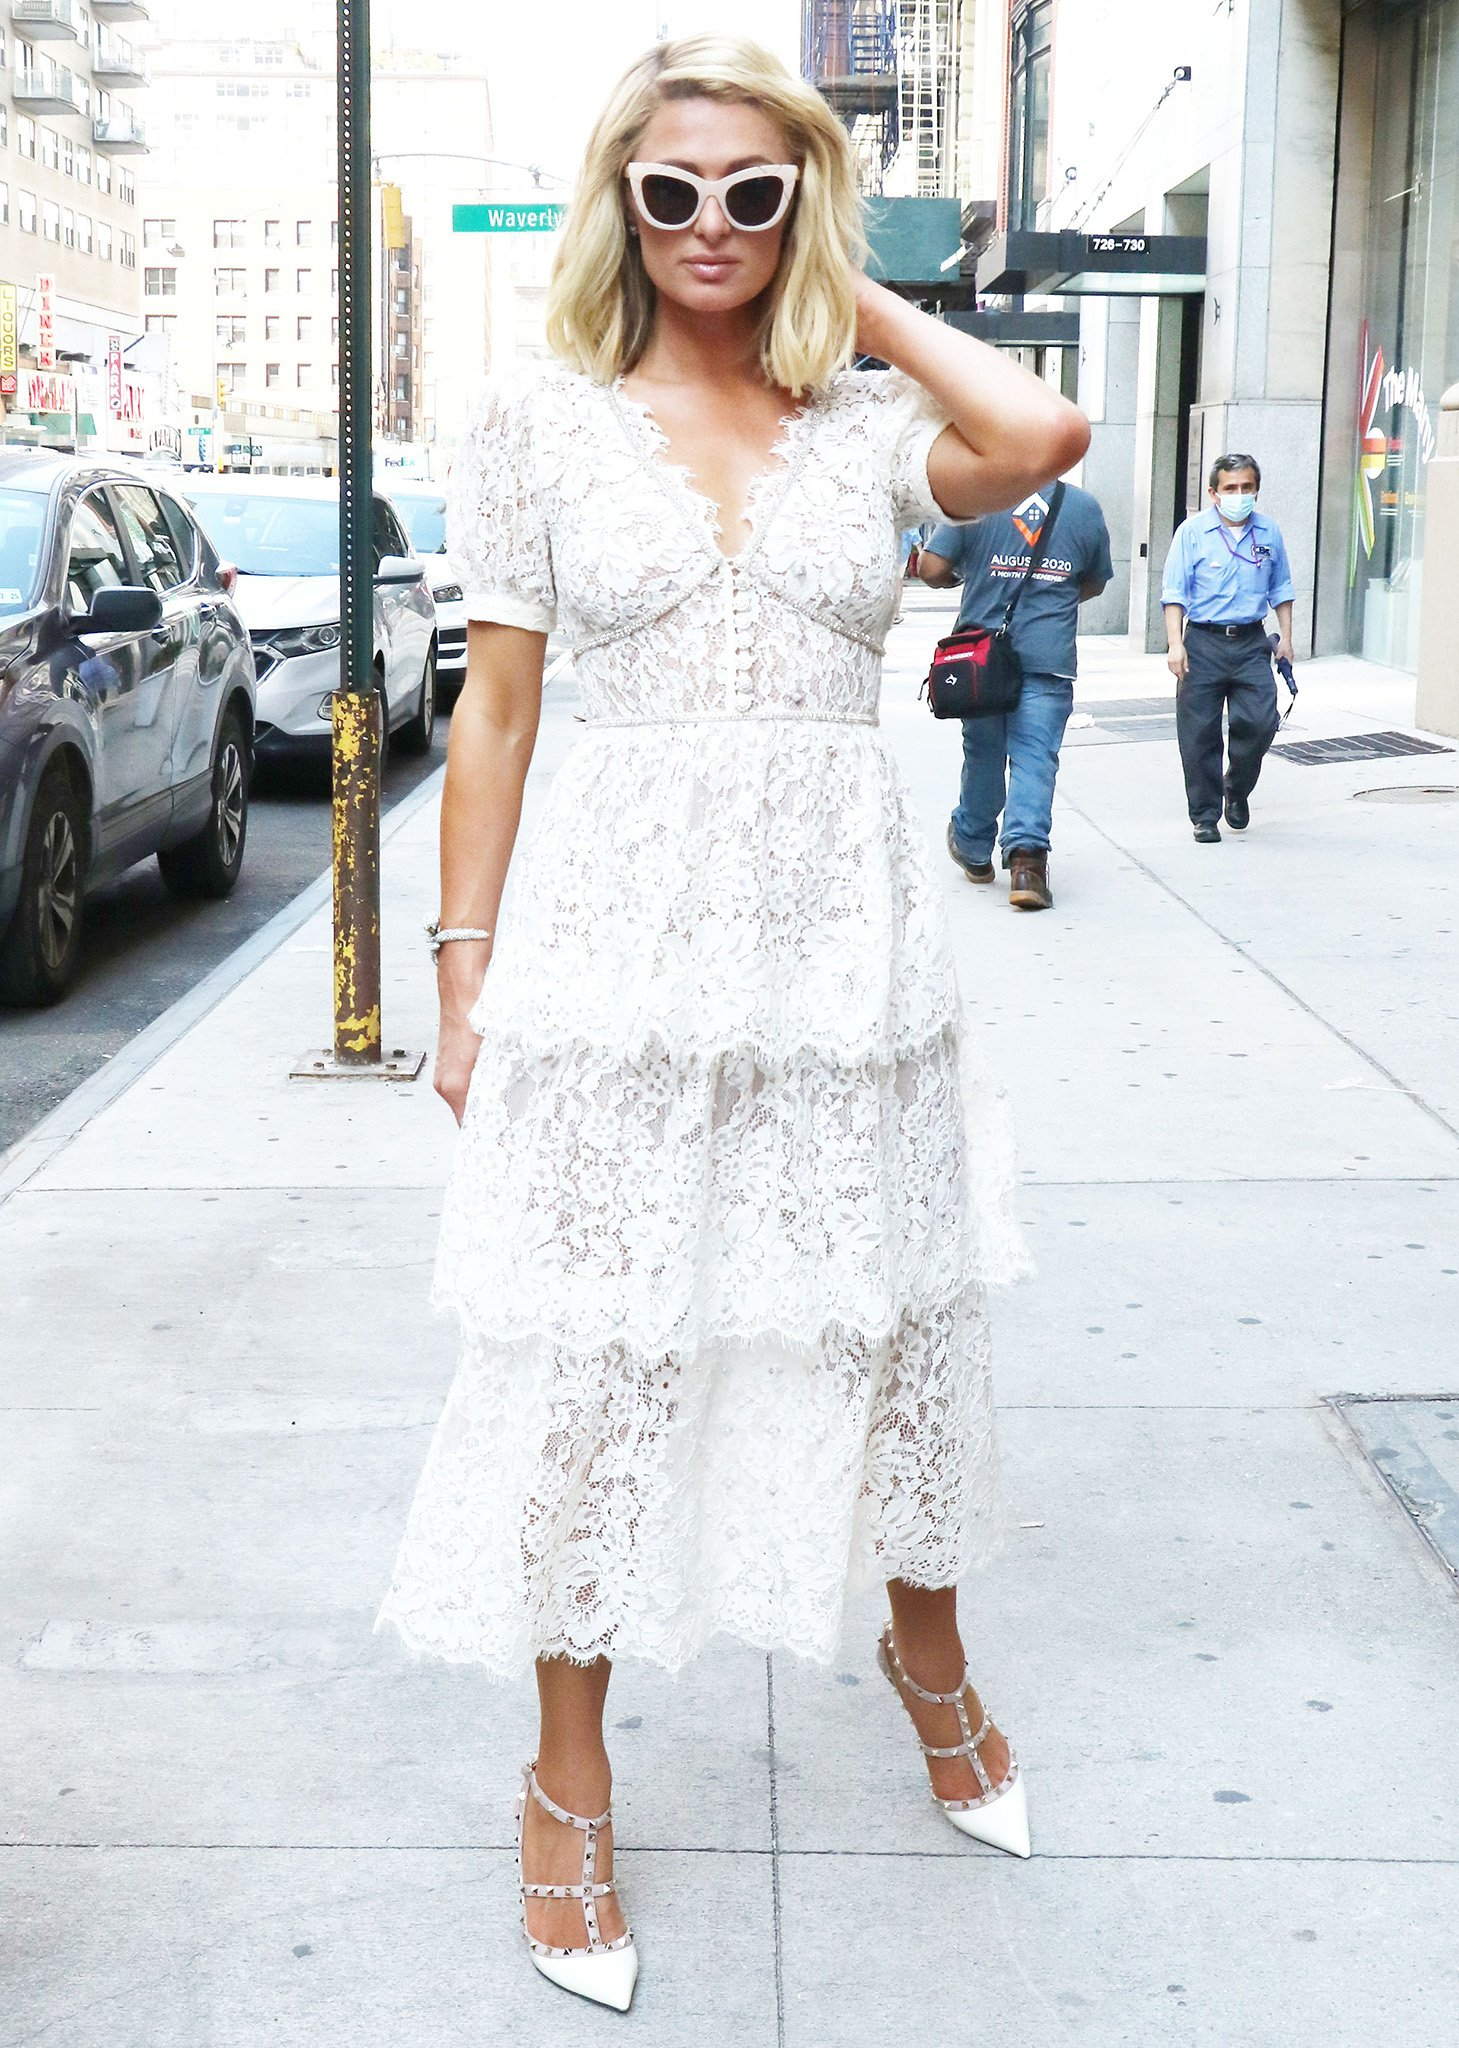 Paris Hilton looks ready for her wedding in a white lace tiered midi dress